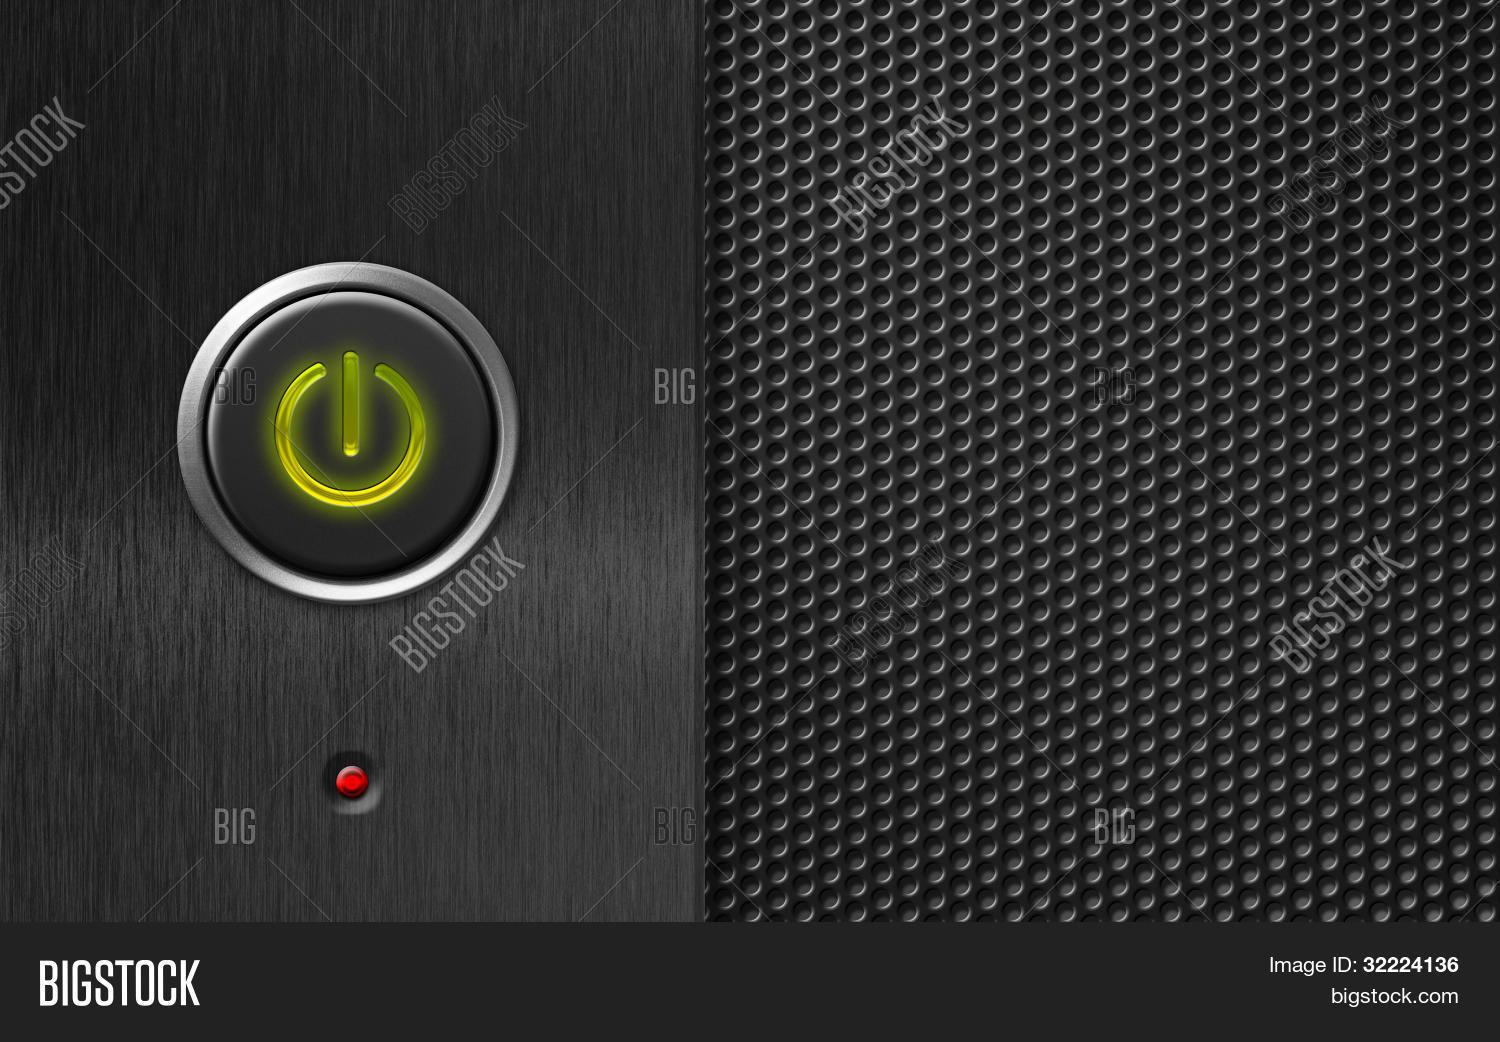 Power Button On Pc Image & Photo (Free Trial) | Bigstock